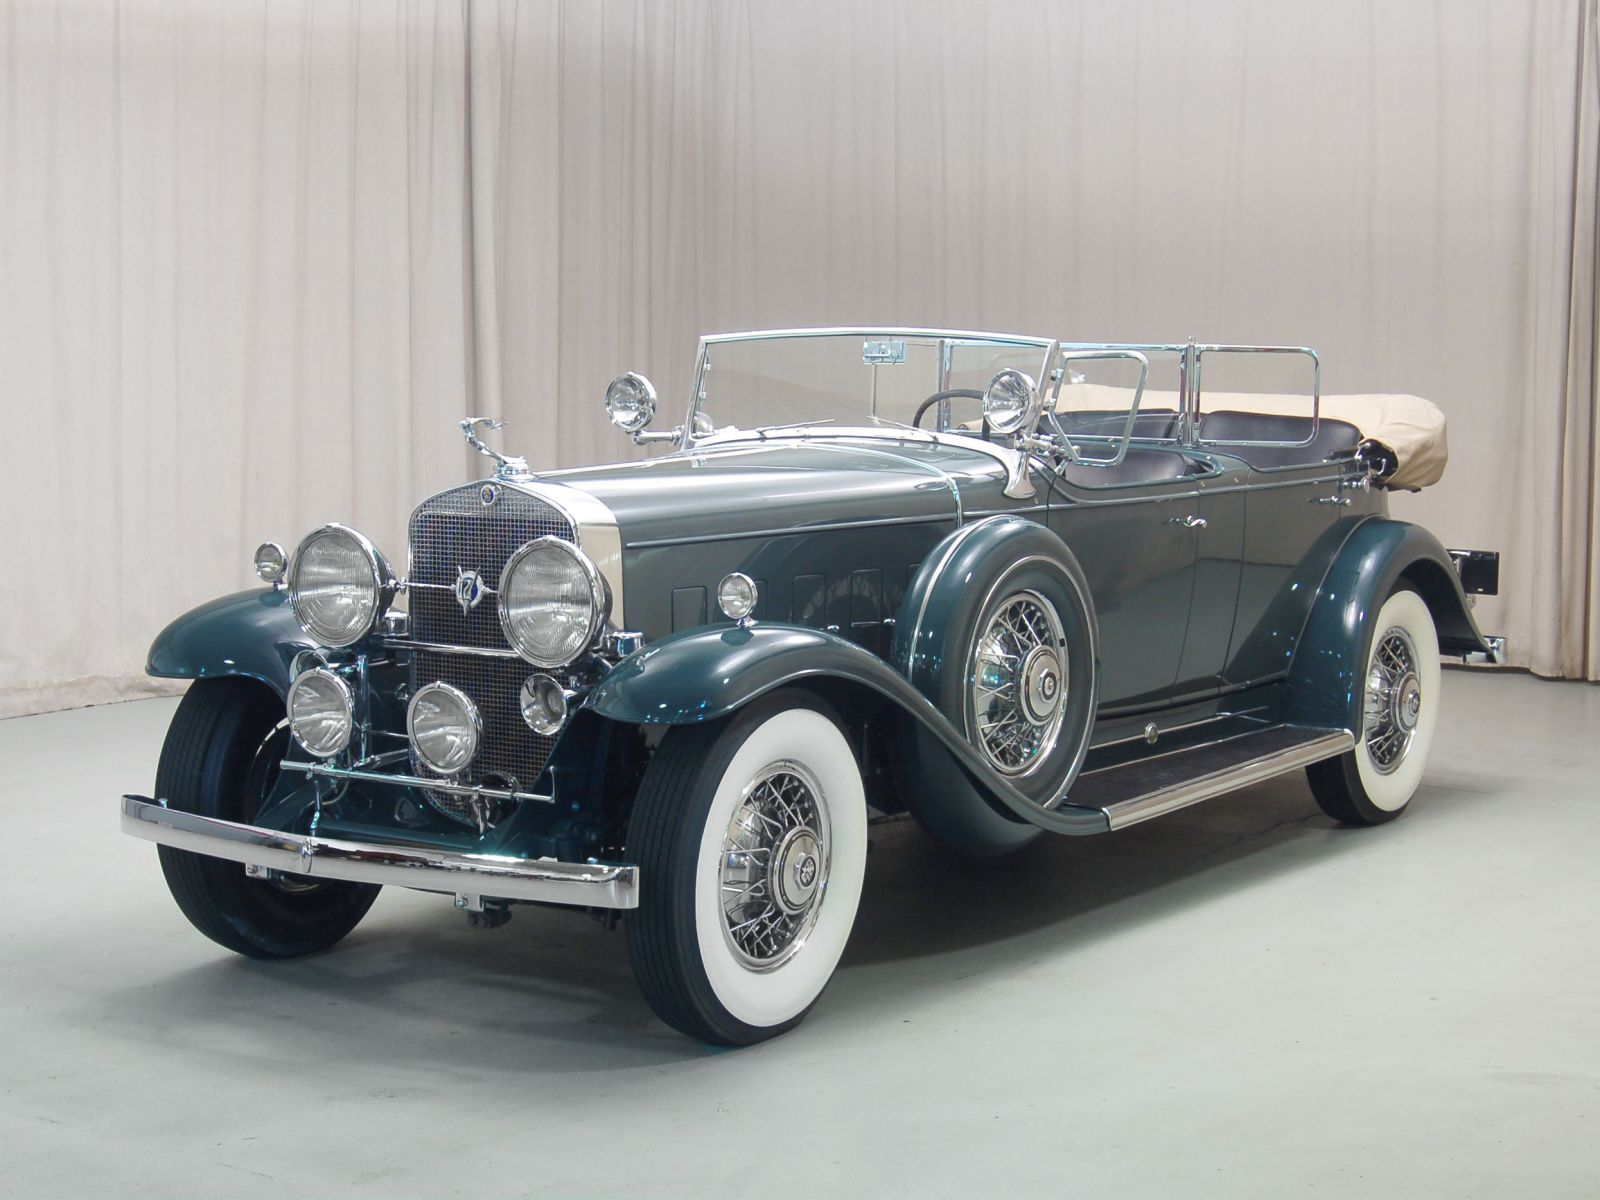 1931 Cadillac V12 Backgrounds, Compatible - PC, Mobile, Gadgets| 1600x1200 px